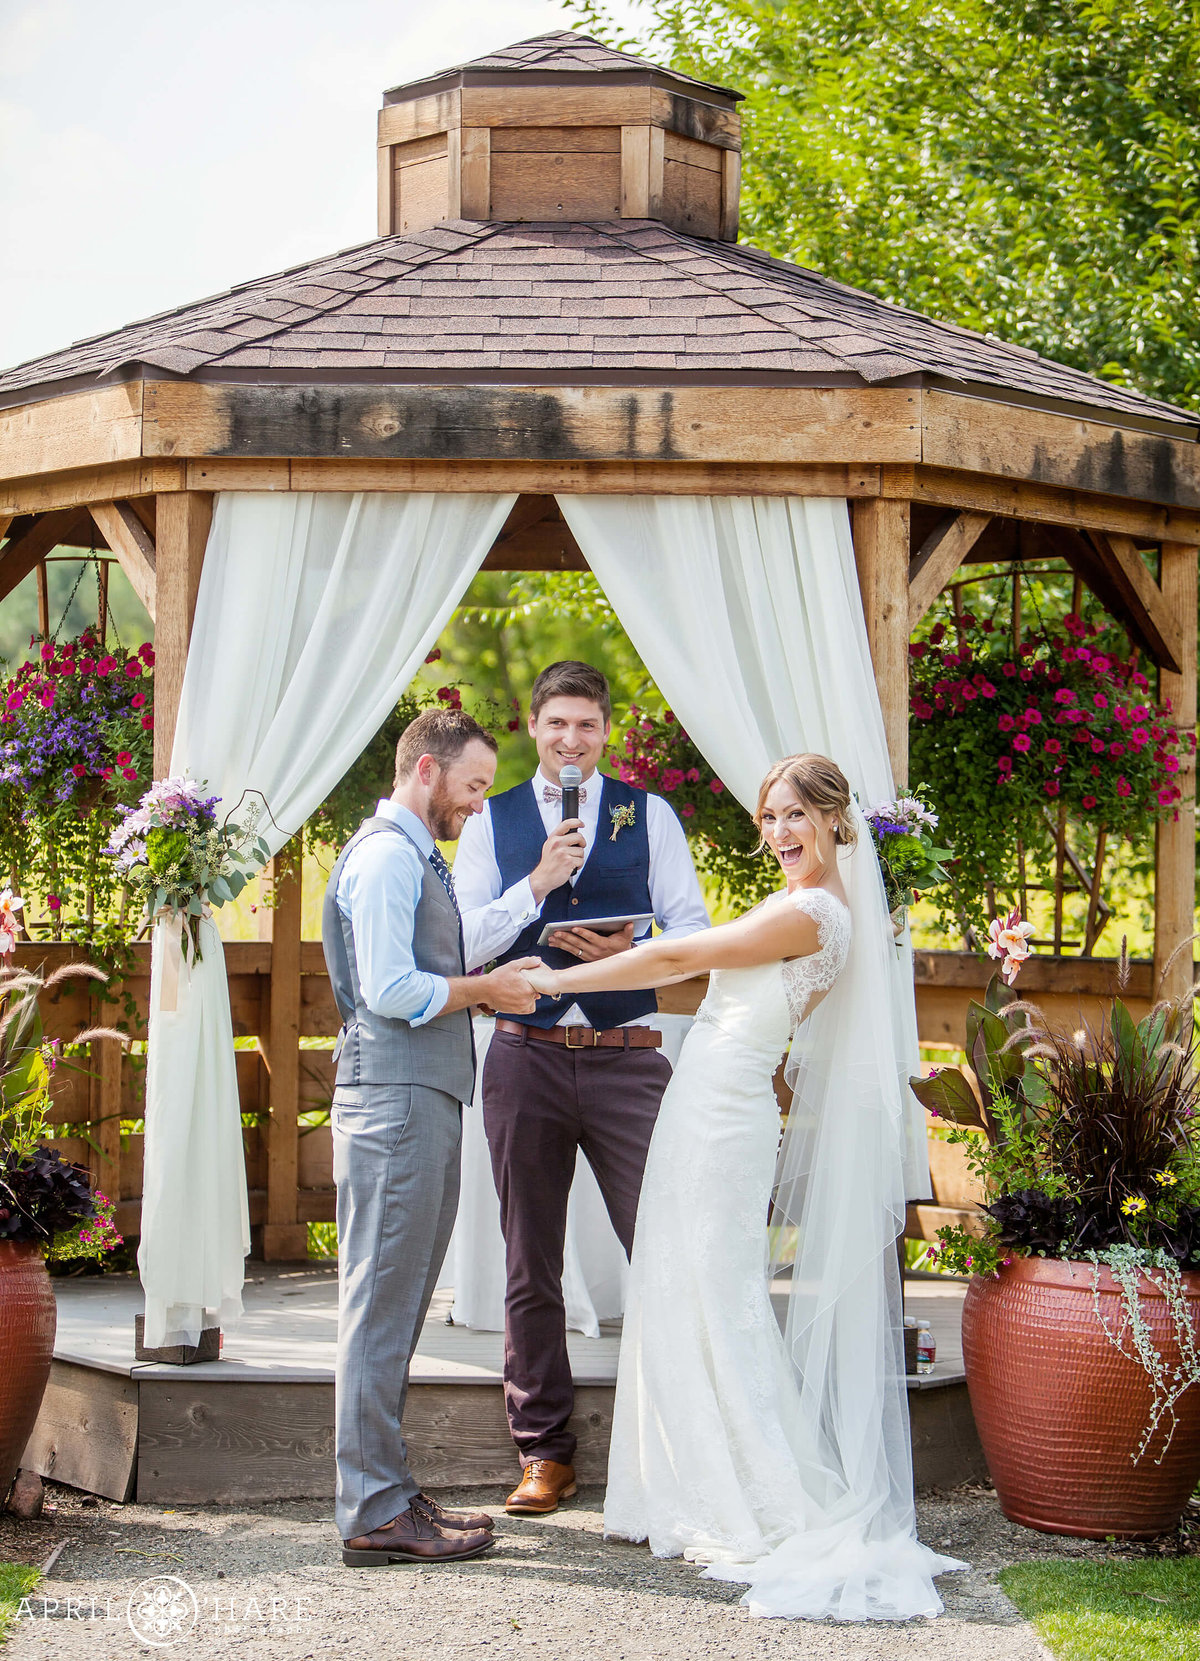 Denver Wedding Photographer  Happy Ceremony Photo at Denver Botanic Gardens Chatfield Farms